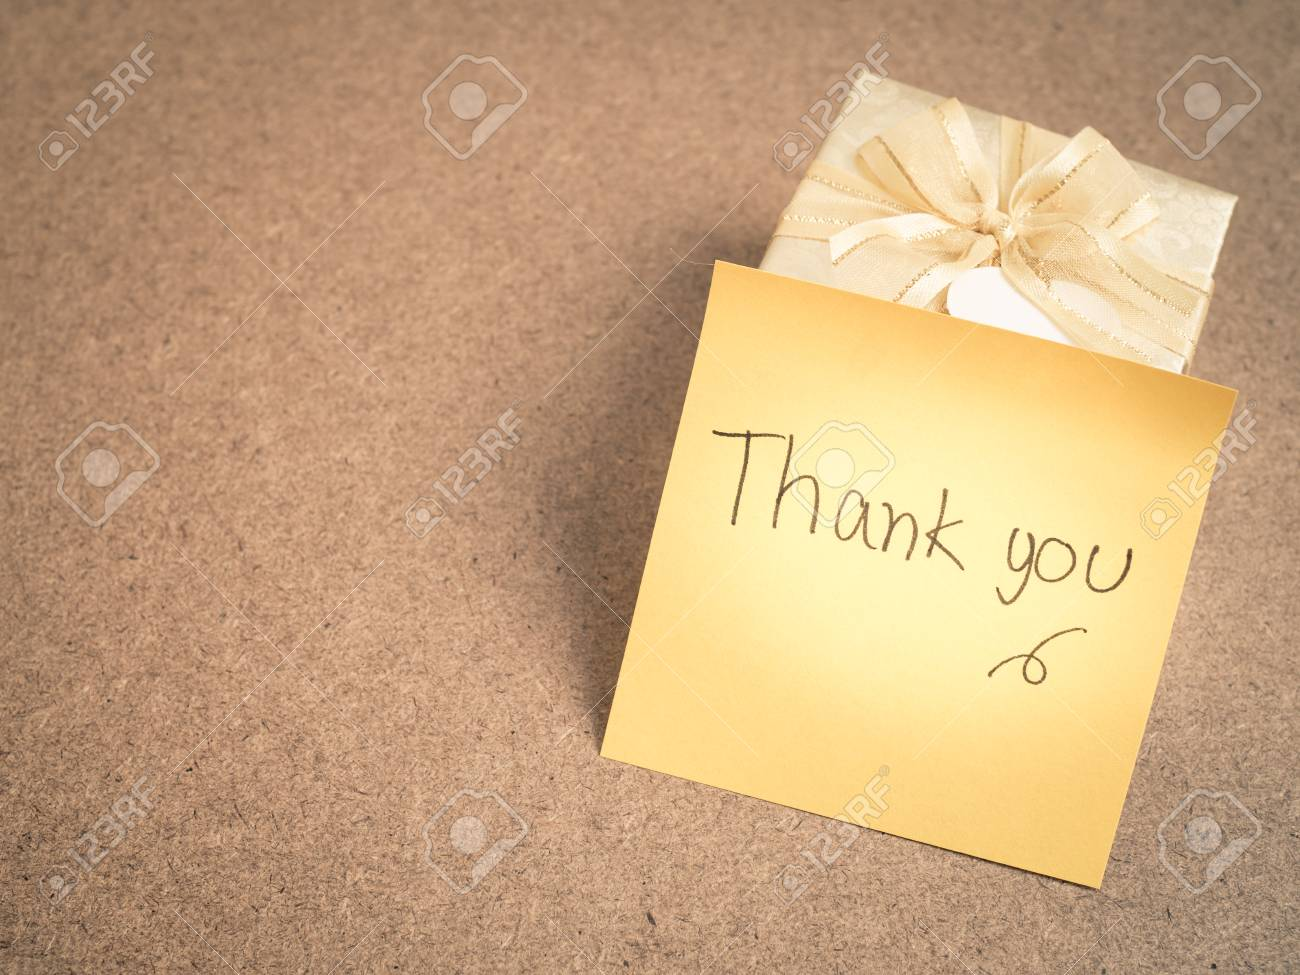 hand writing thank you words on yellow sticky note with gold